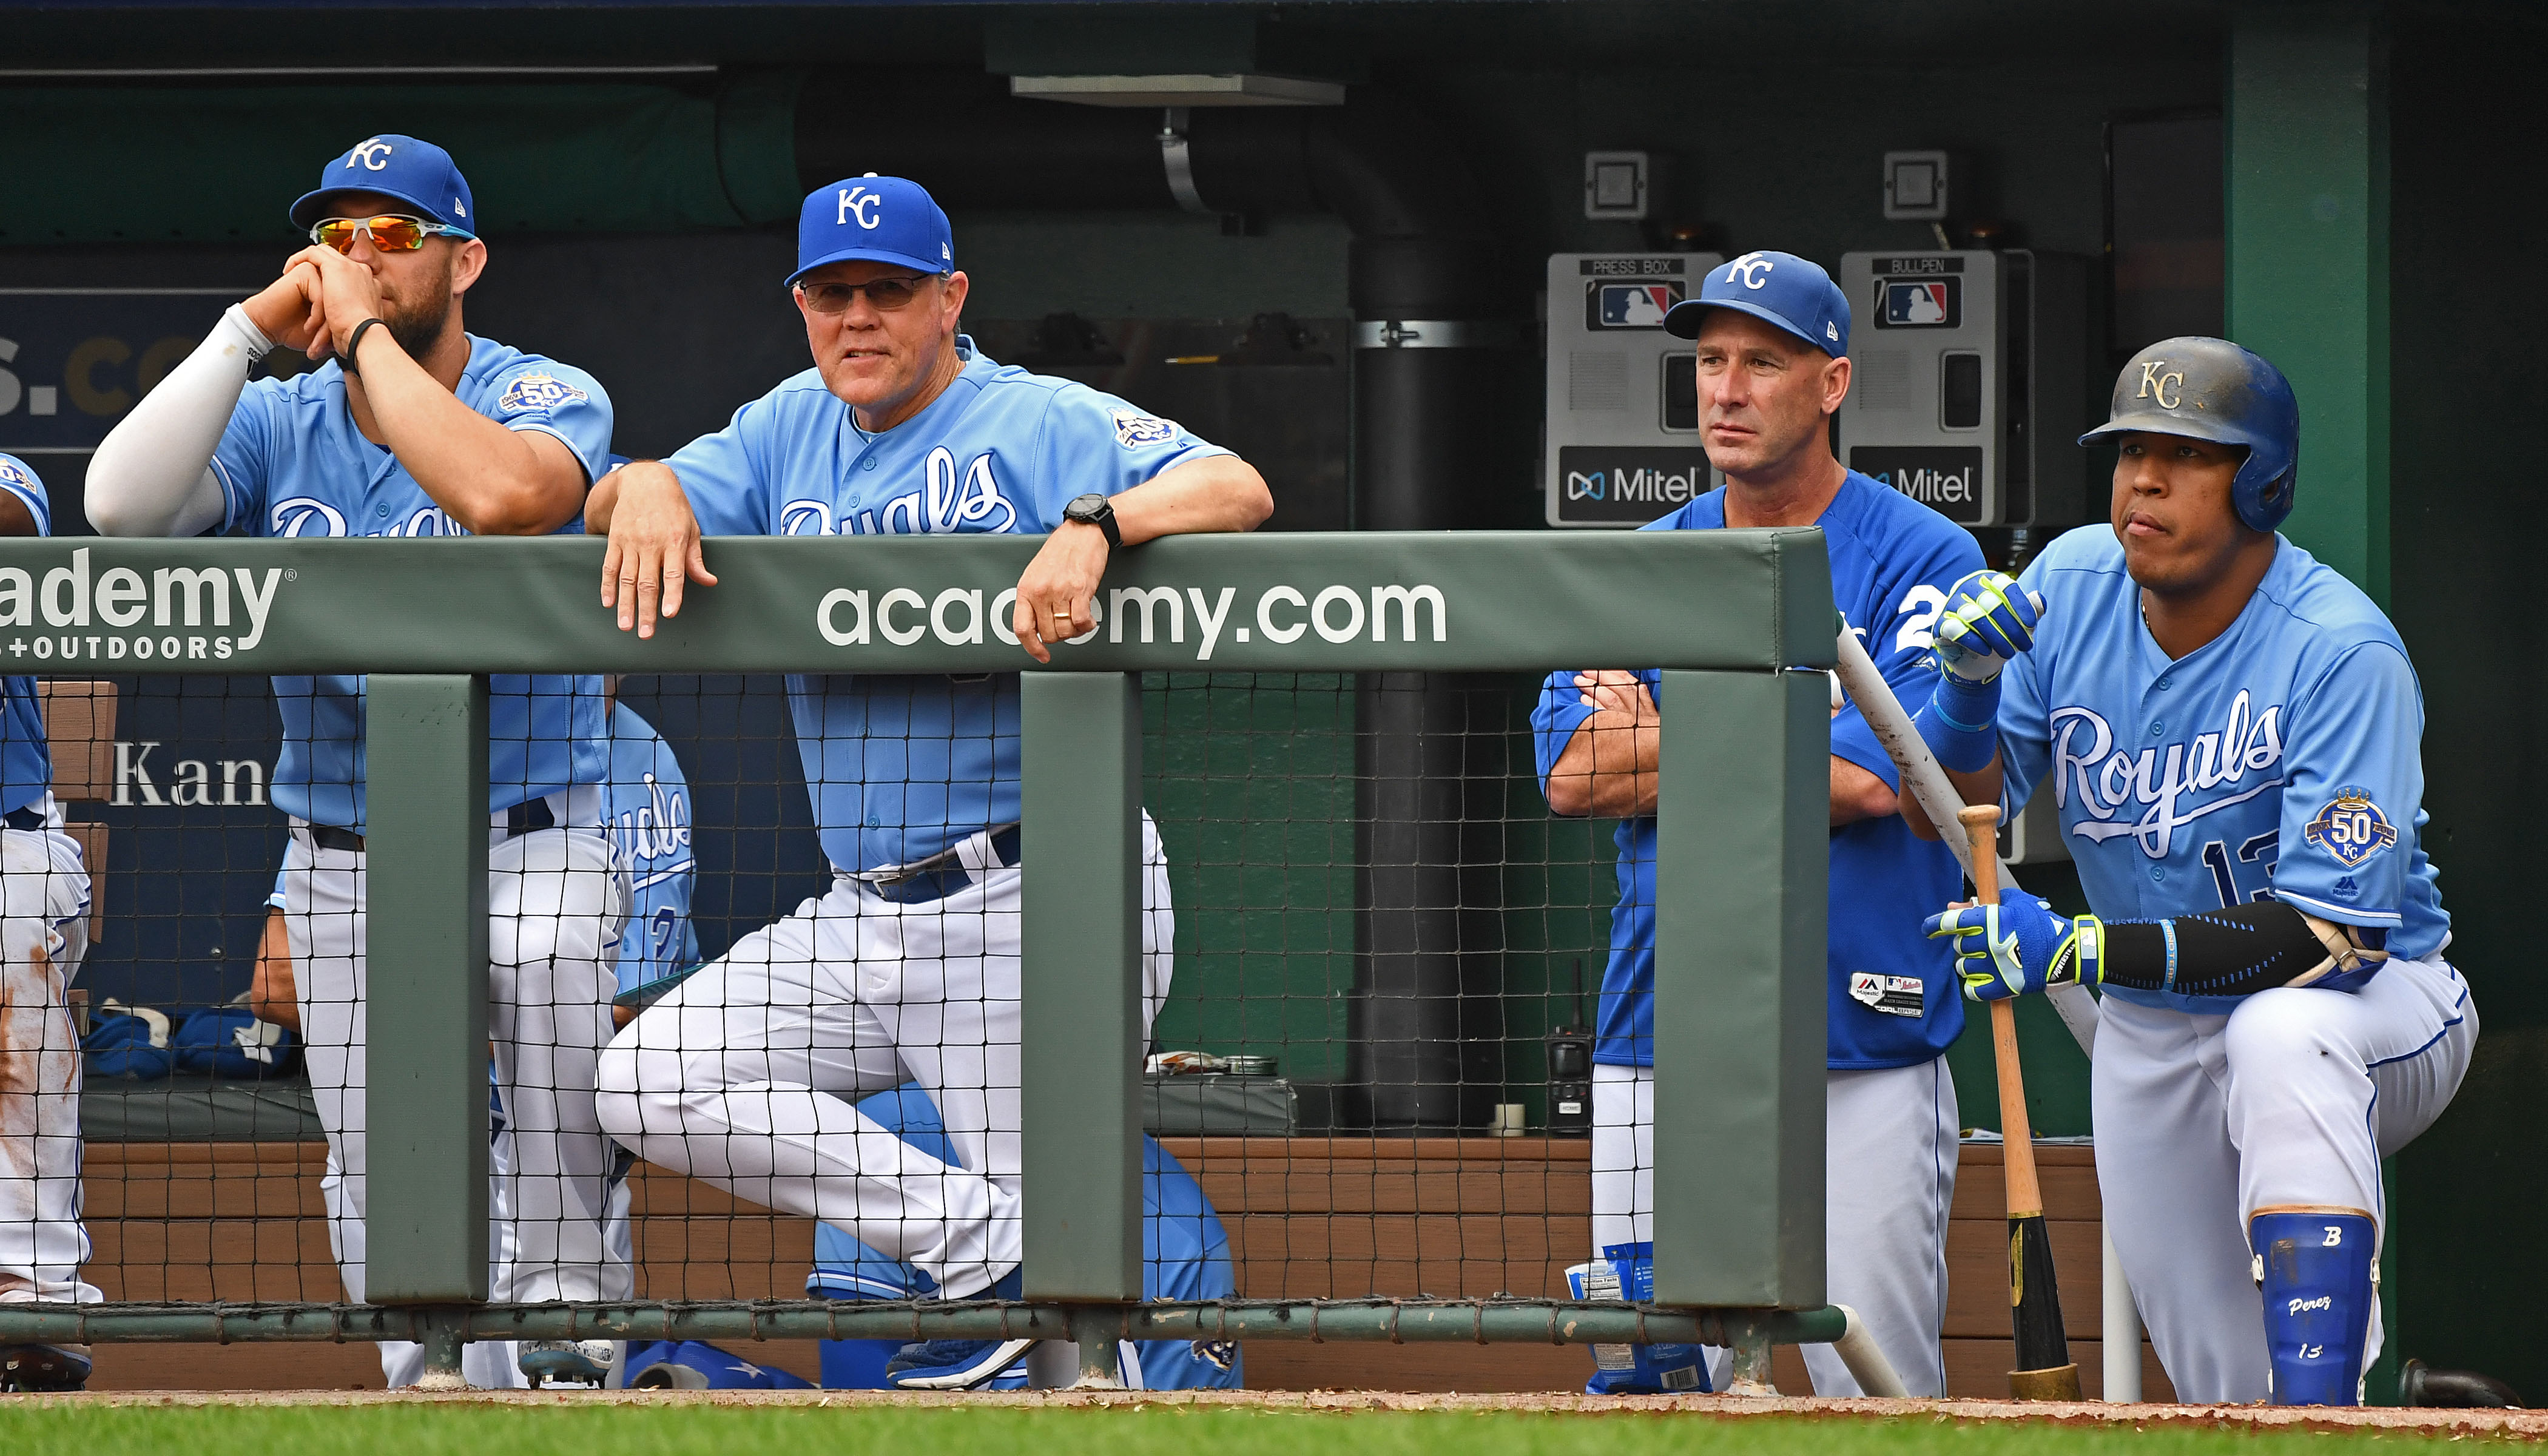 Royals manager Ned Yost (left center) looks on from the dugout with left fielder Alex Gordon (far left), bench coach Dale Sveum (right center) and designated hitter Salvador Perez (far right)